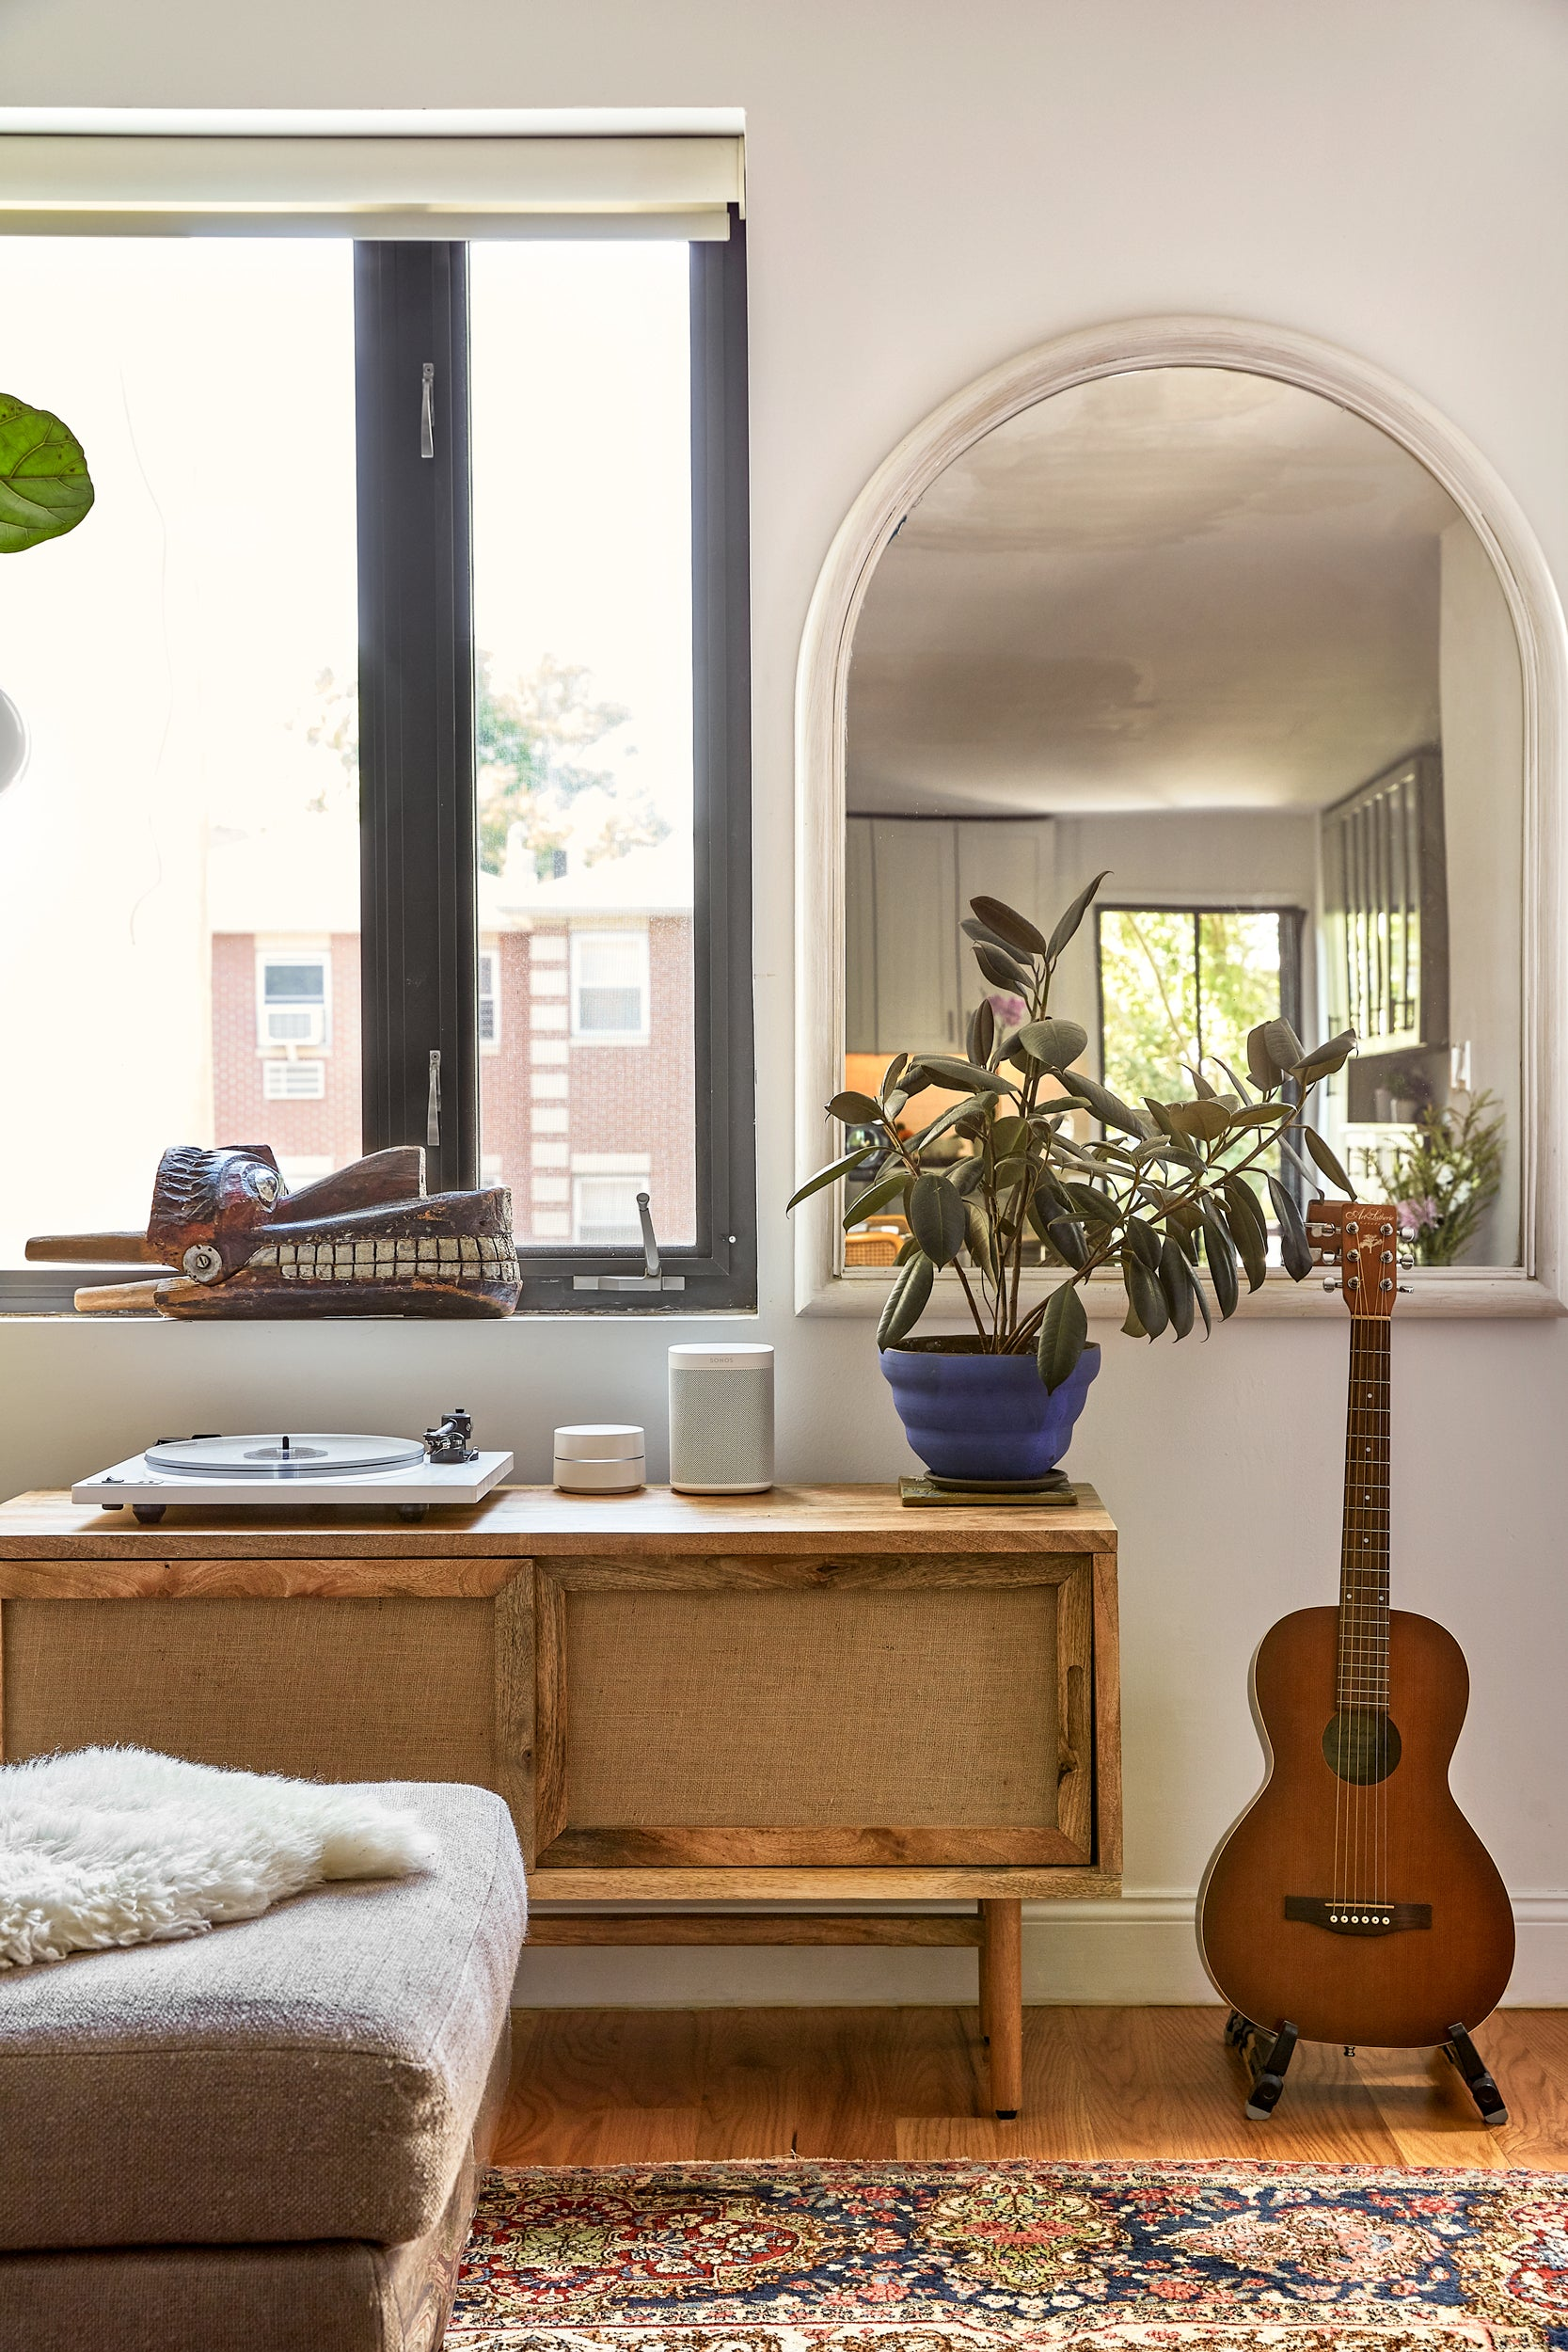 rattan console underneath mirror and guitar